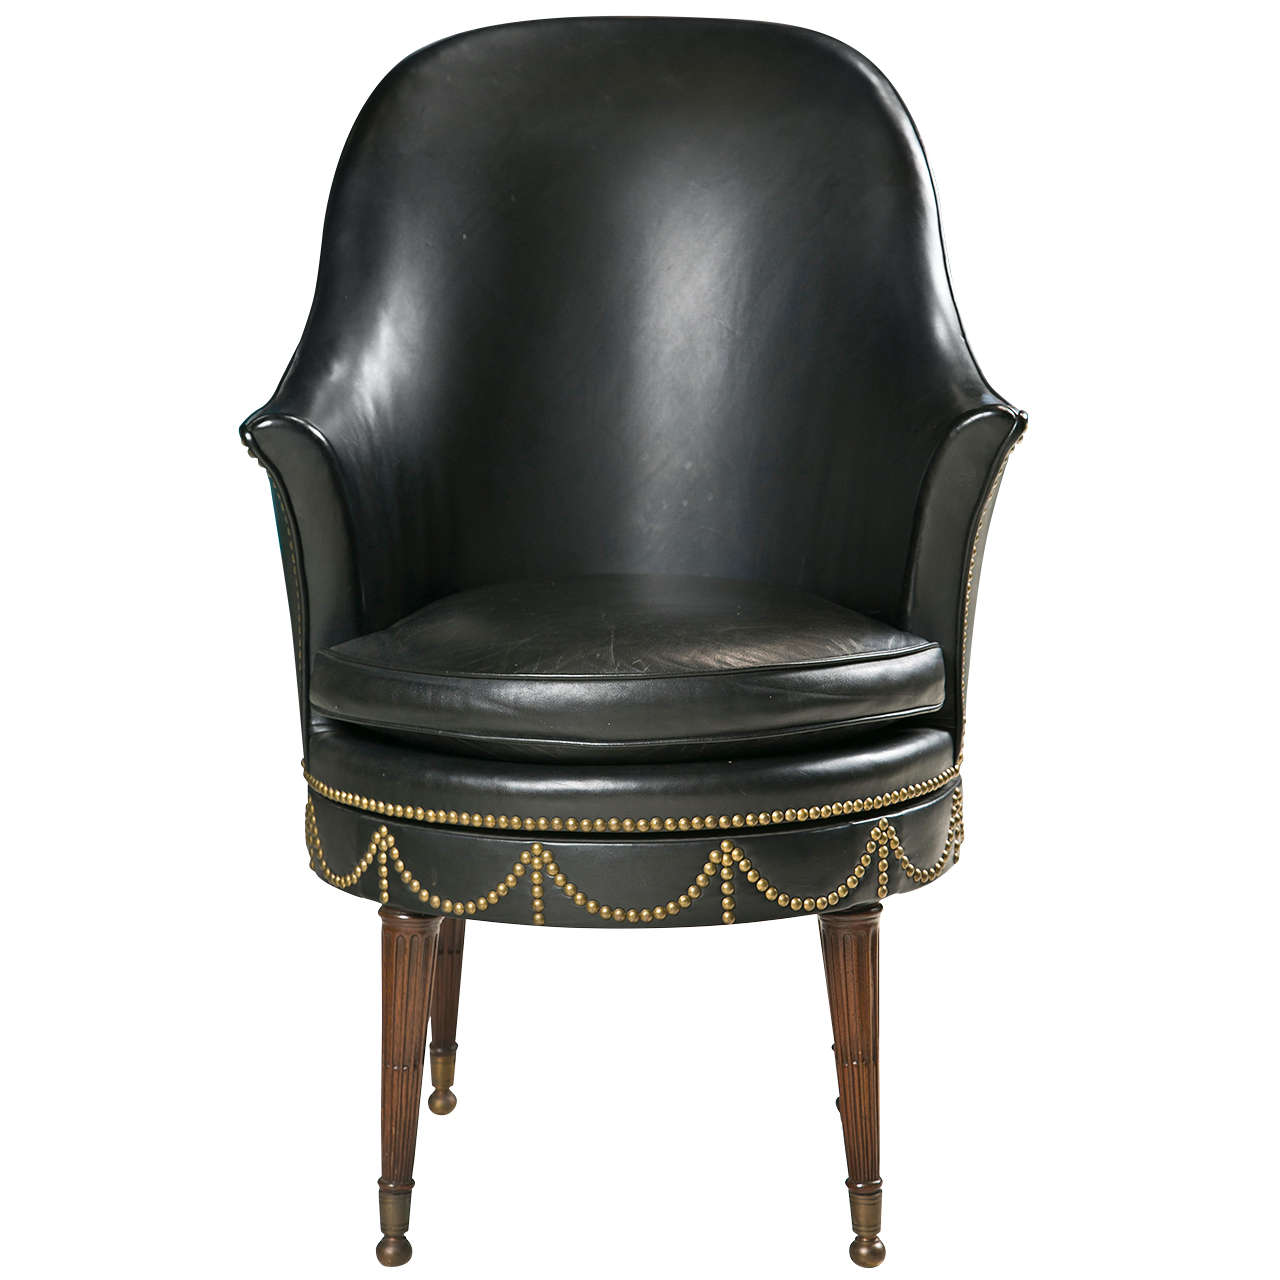 leather swivel chair tiffany wedding chairs black with decorative nailheads at